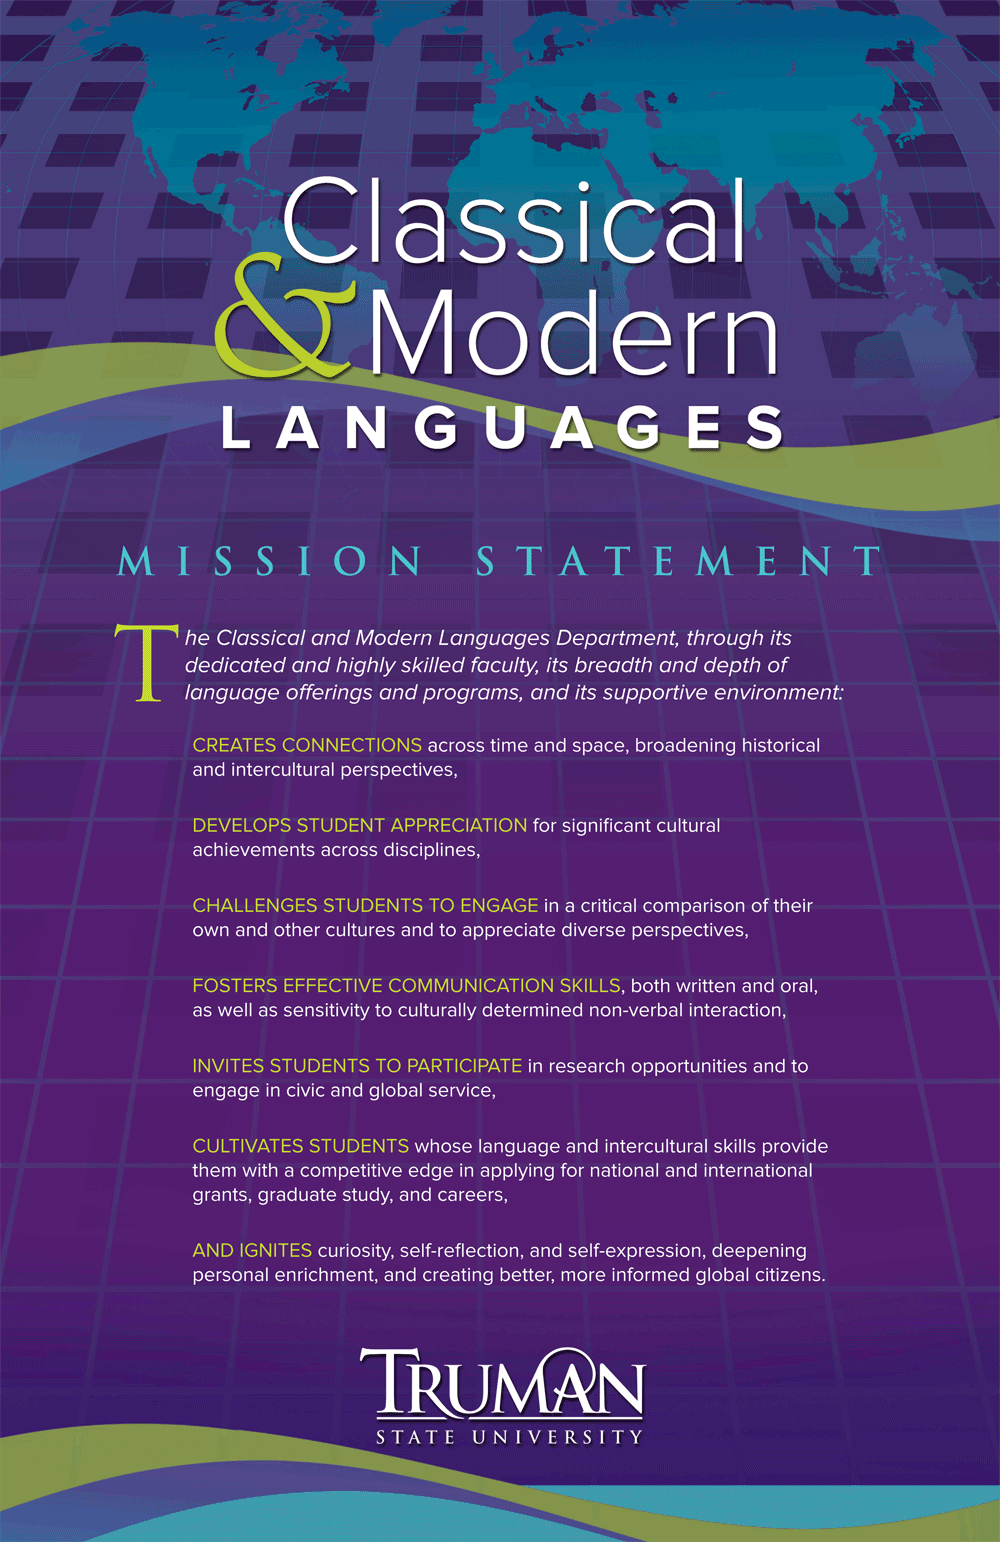 Classical & Modern Languages Mission Statement